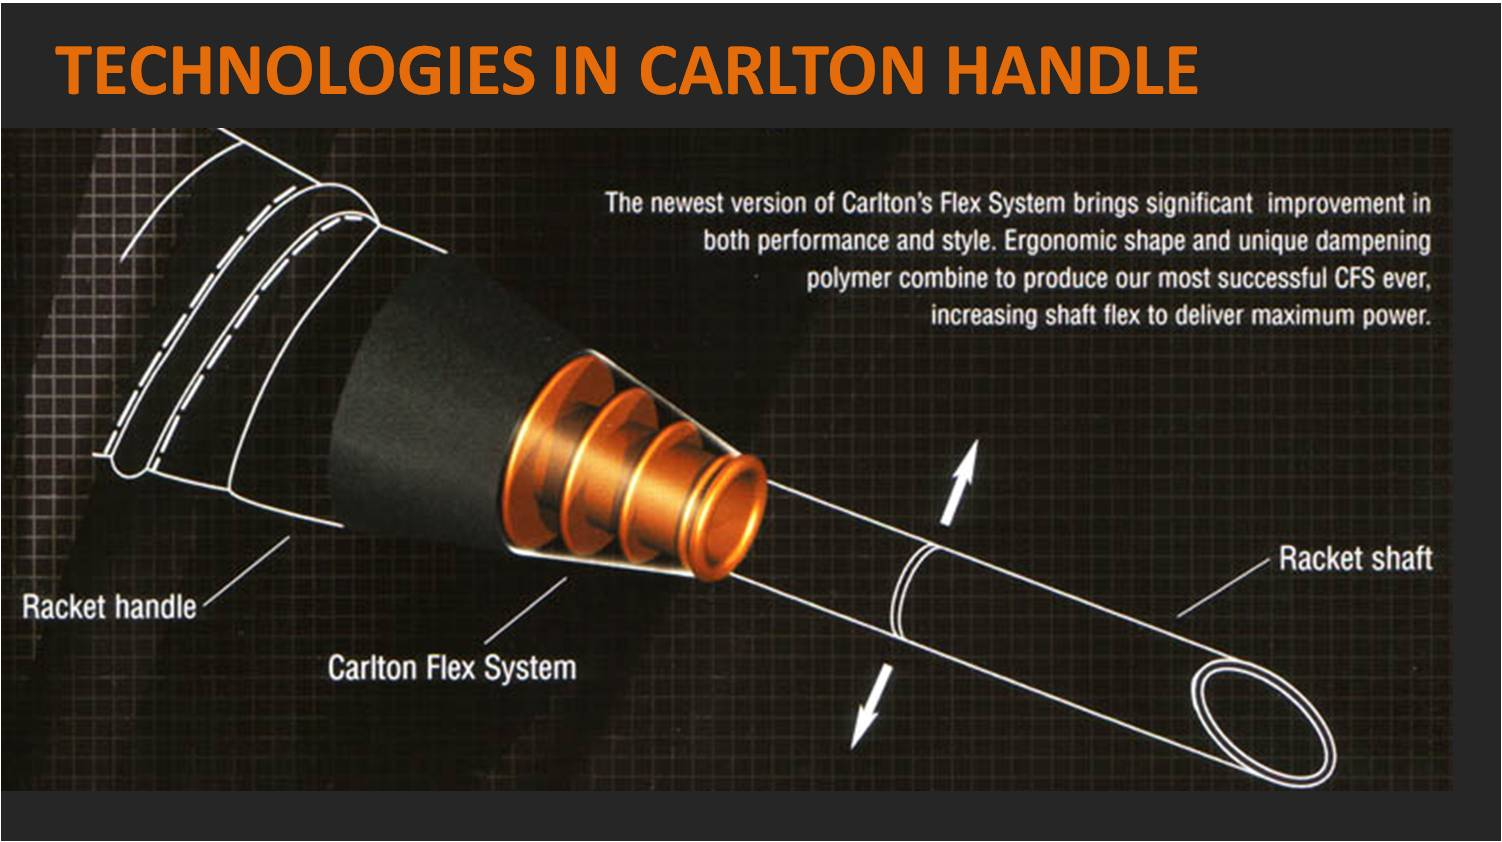 TECHNOLOGIES_IN_CARLTON_HANDLE